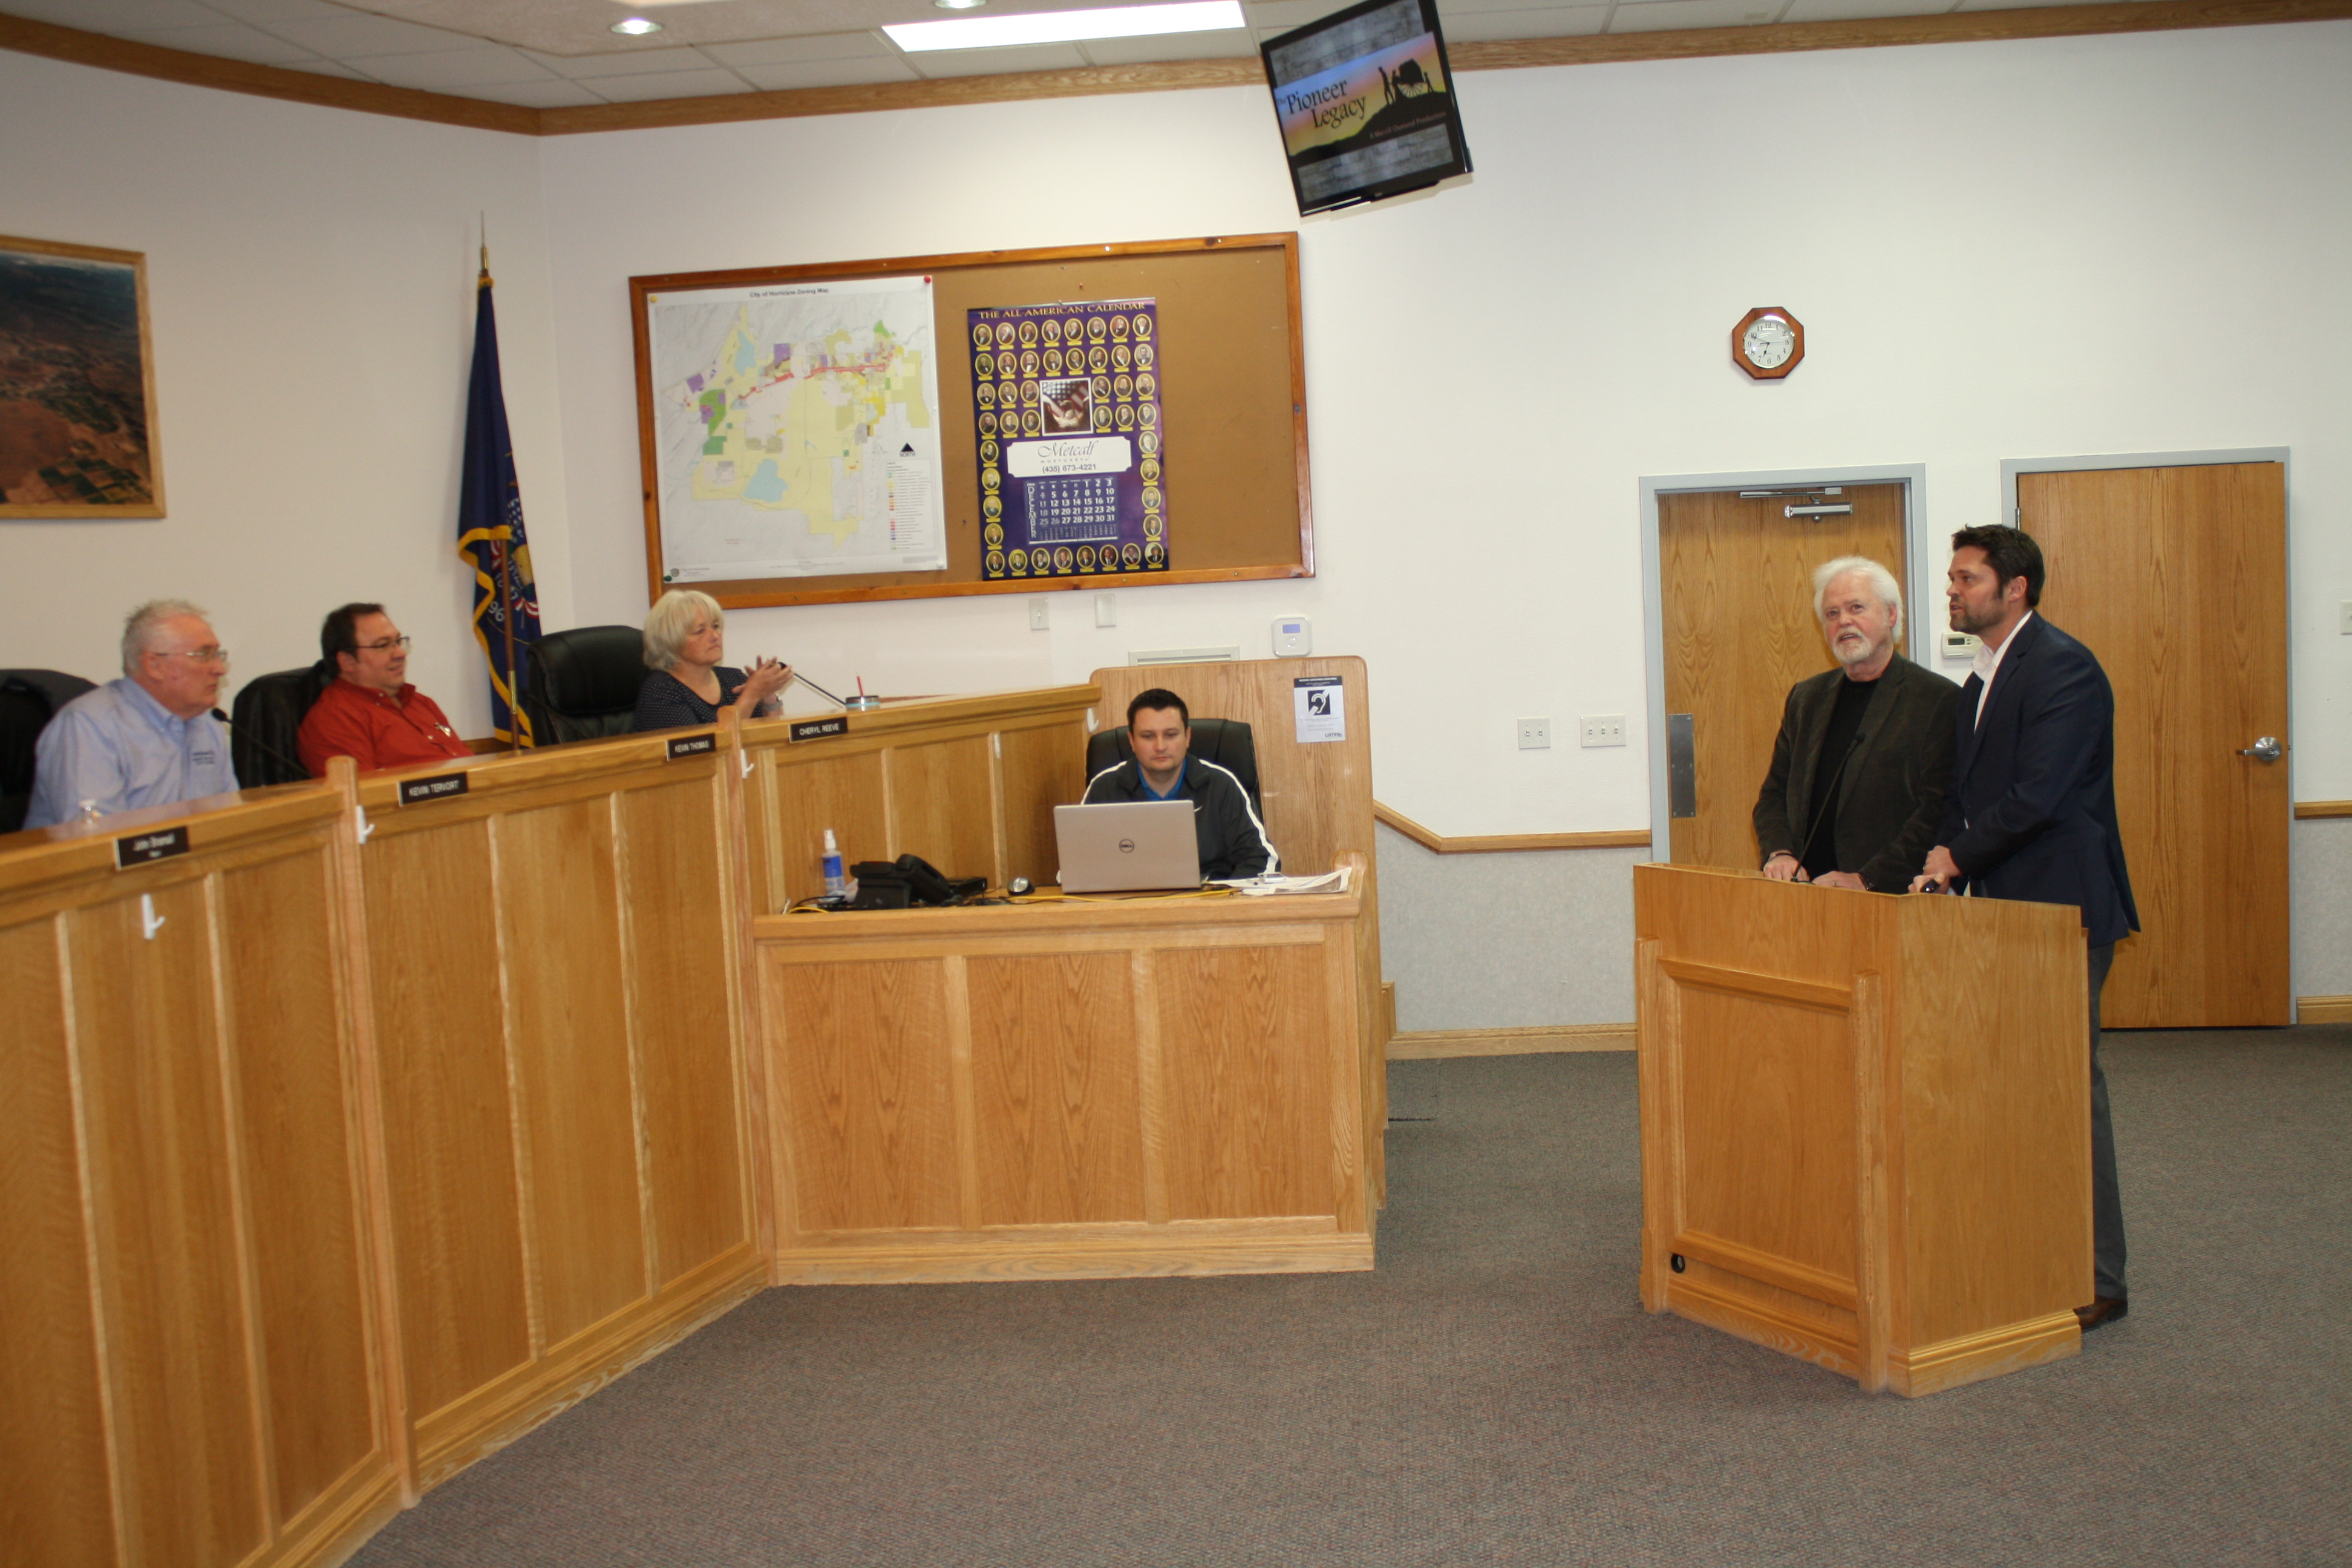 Merrill (left) and Justin (right) Osmond, take the podium to gain the Hurricane City Council's support of their upcoming Pioneer Day Pageant, Hurricane City Offices, Hurricane, Utah, Jan. 5, 2017 | Photo by Reuben Wadsworth